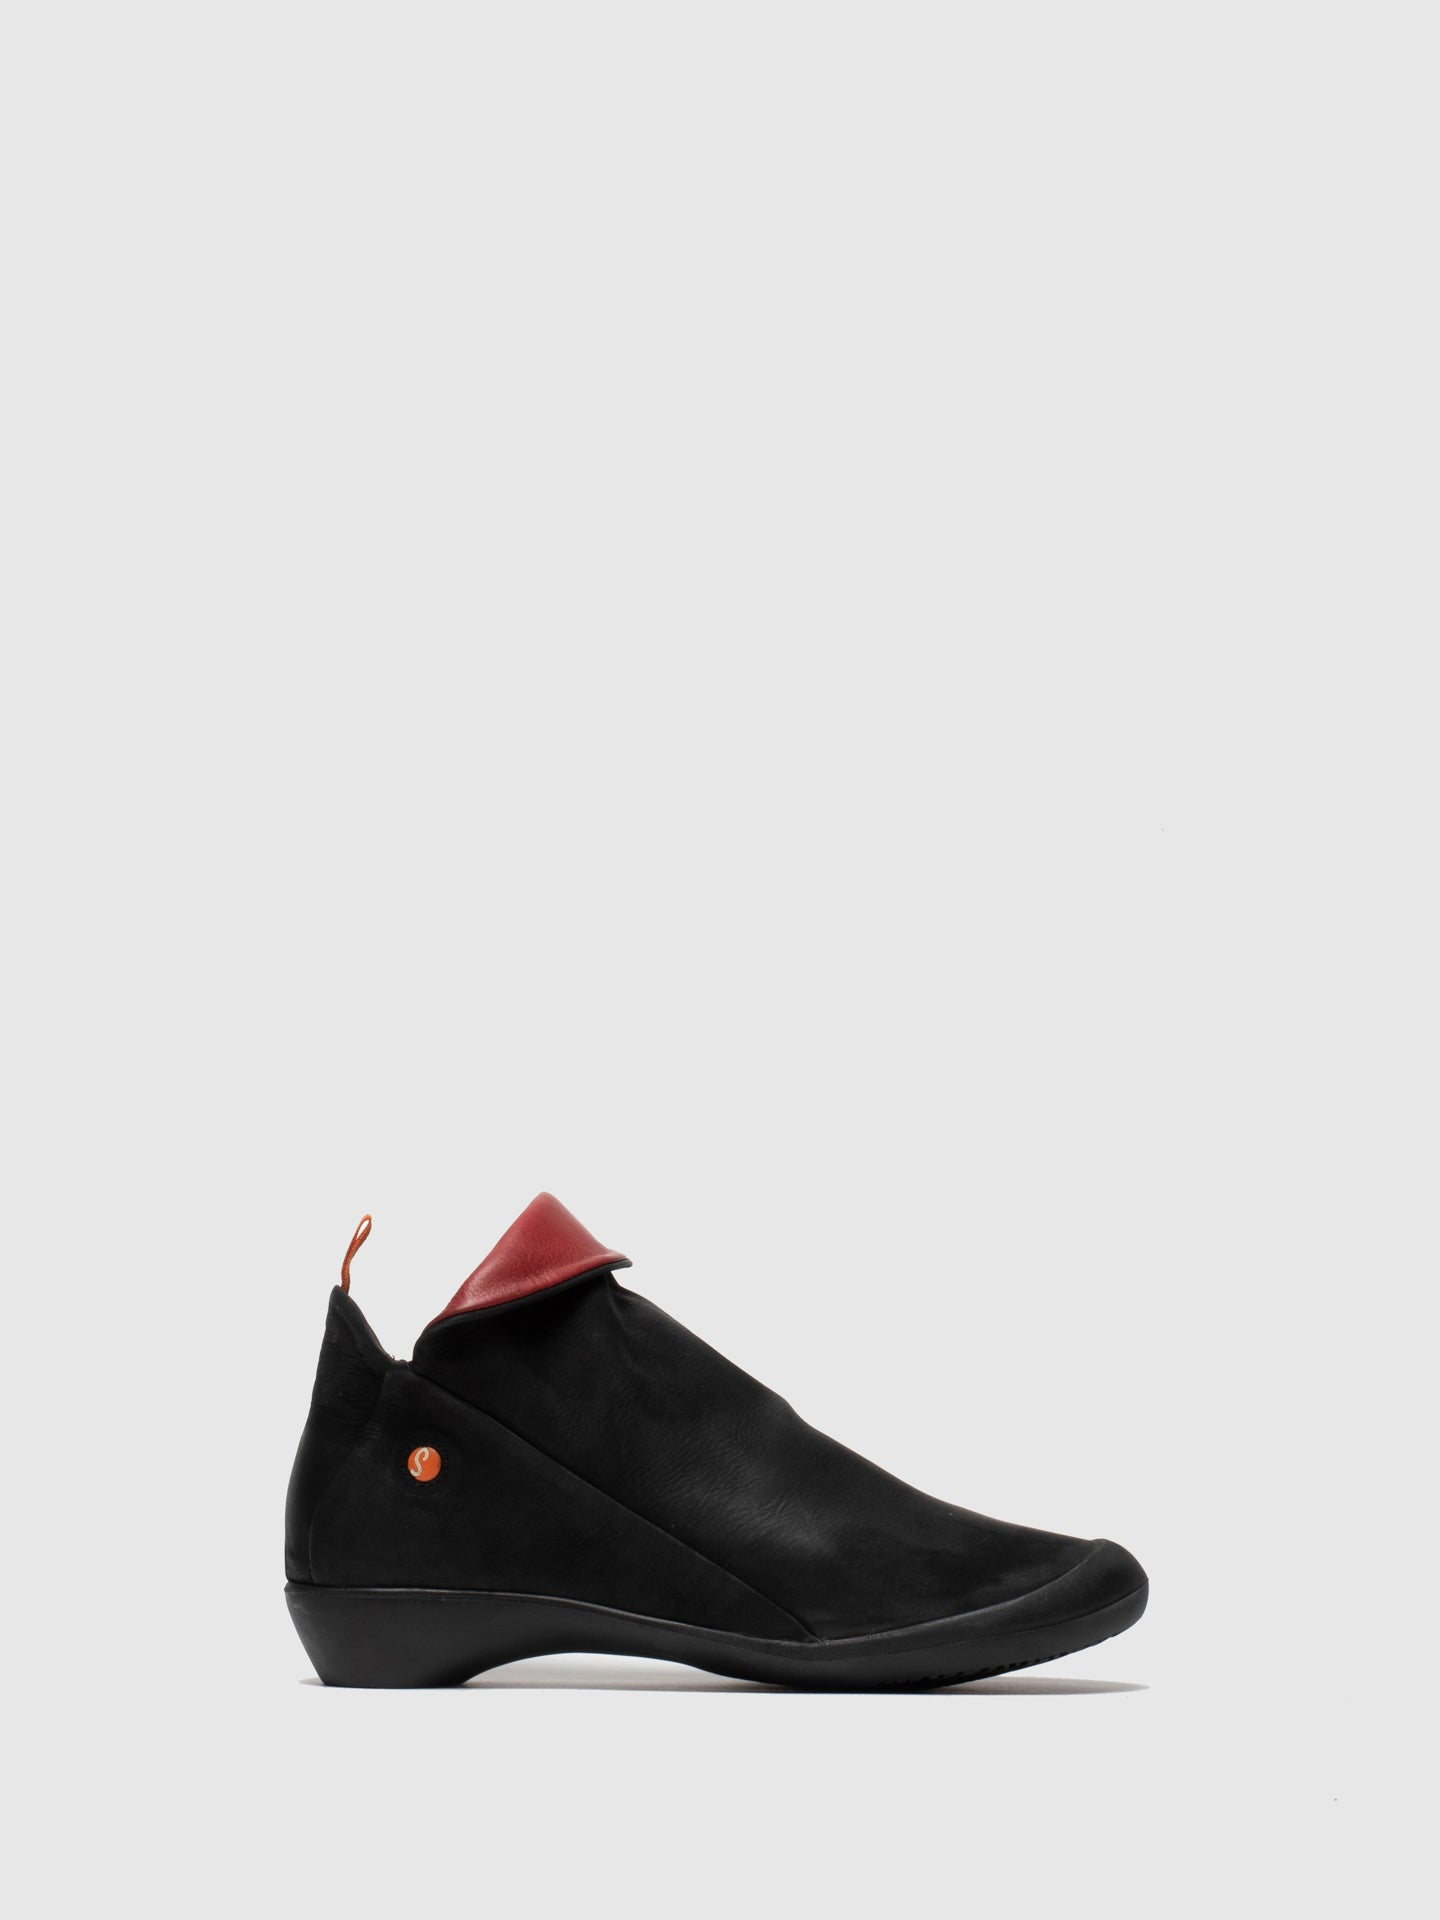 Softinos Zip Up Ankle Boots FARAH BLACK/RED